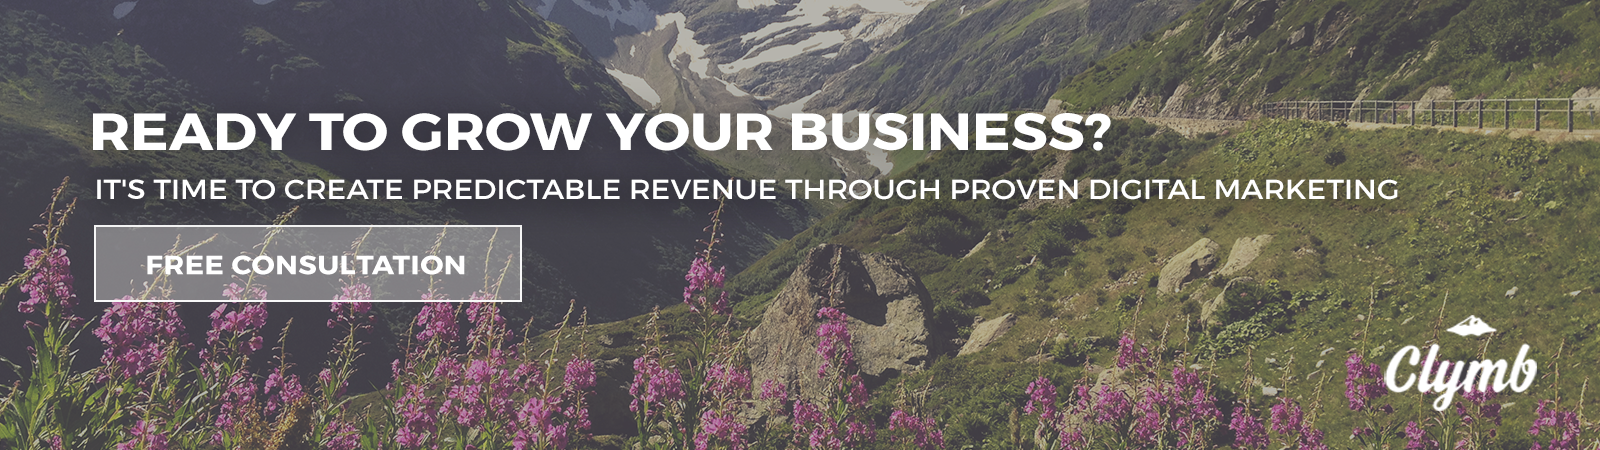 ready to grow your business by creating predictable revenue?